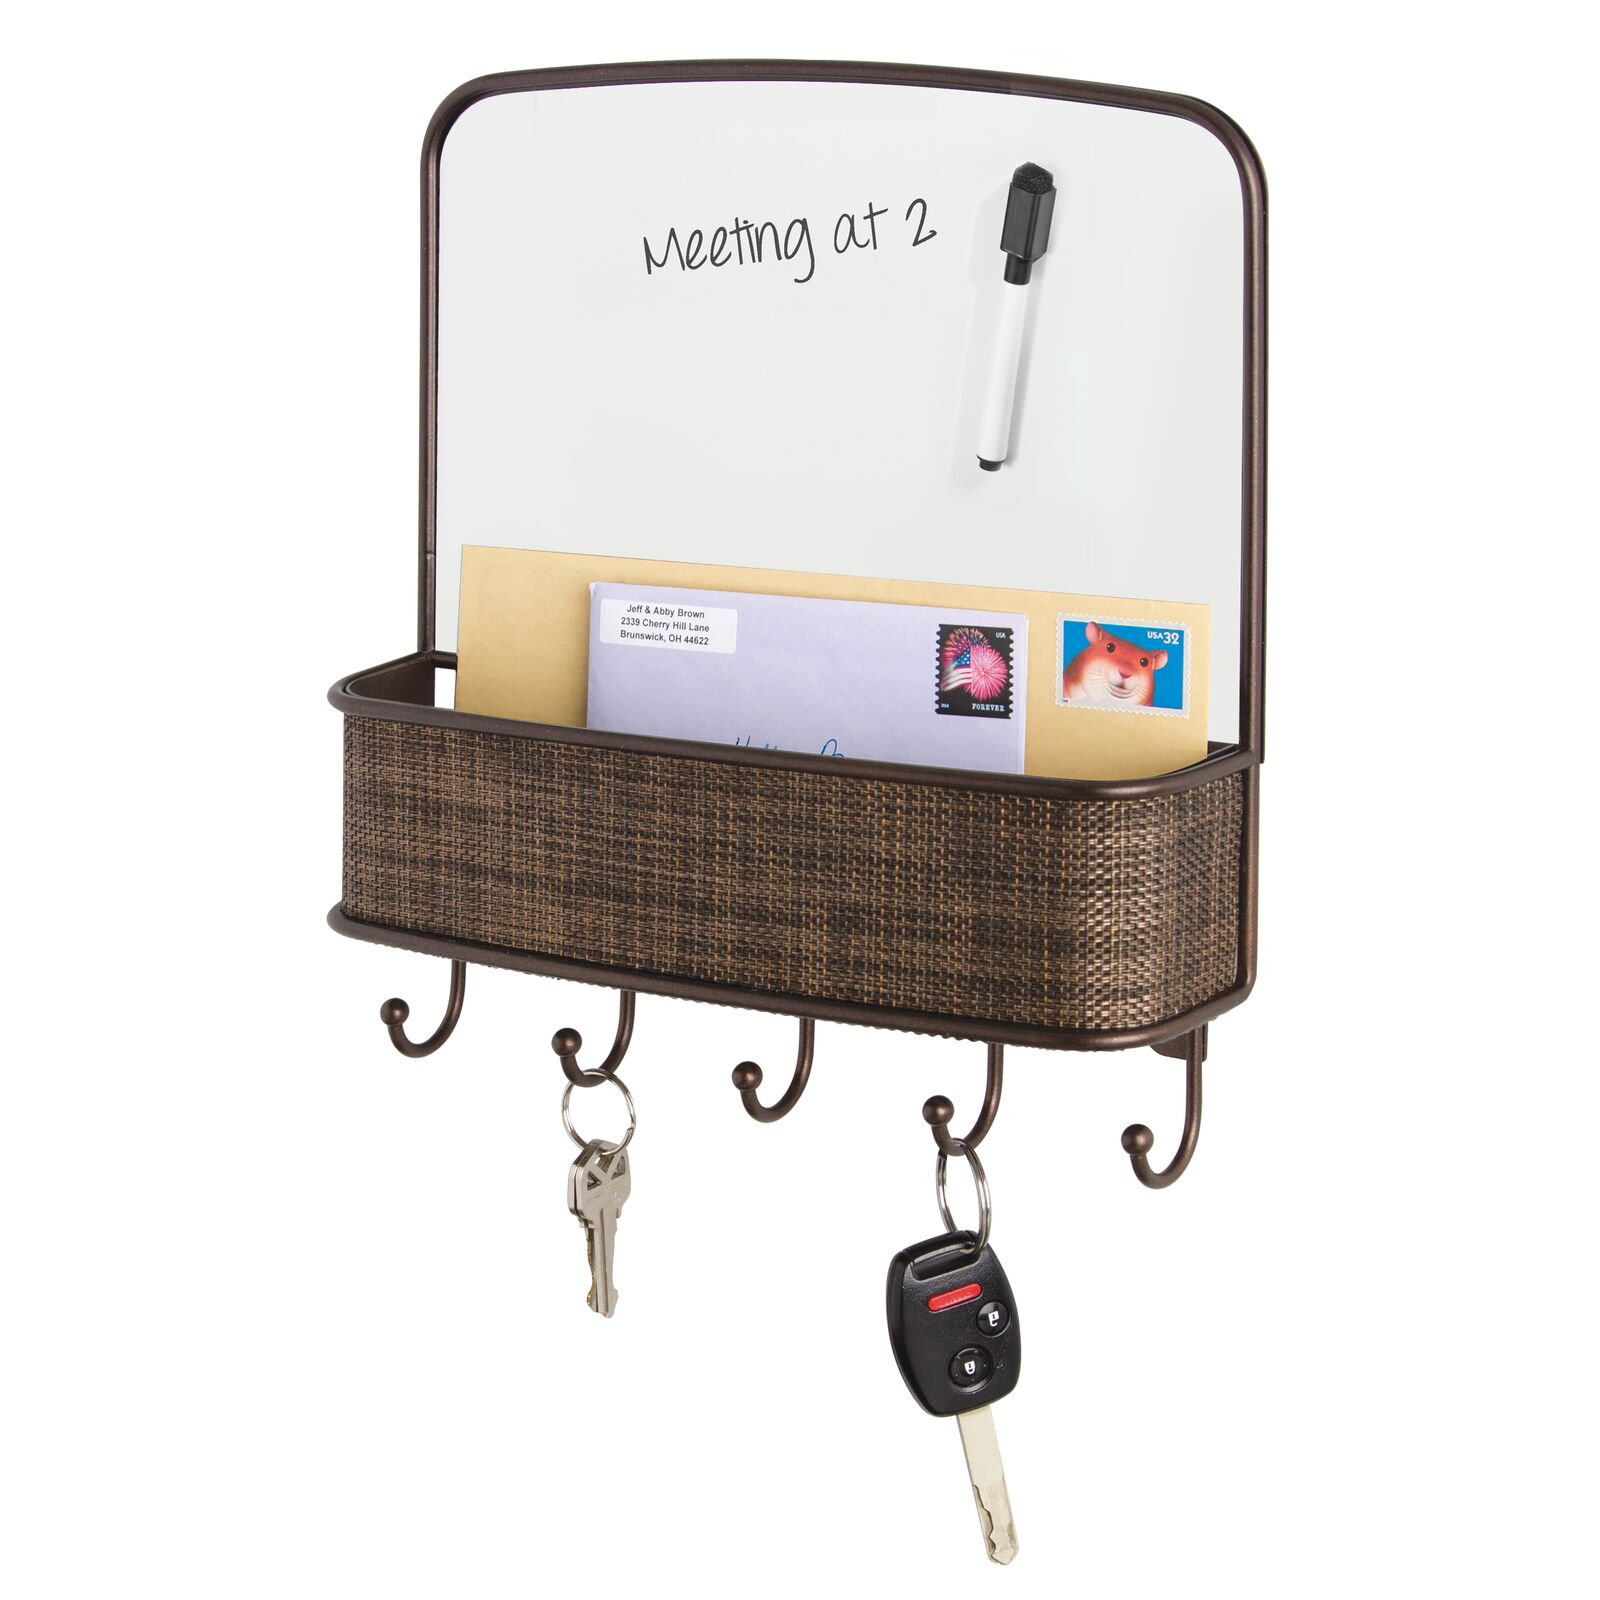 6 Hooks Magazines Keys Holds Letters Chrome Vine Design Office Storage Organizer Mail Basket with Dry Erase Board mDesign Metal Wall Mount Entryway Coats Leashes